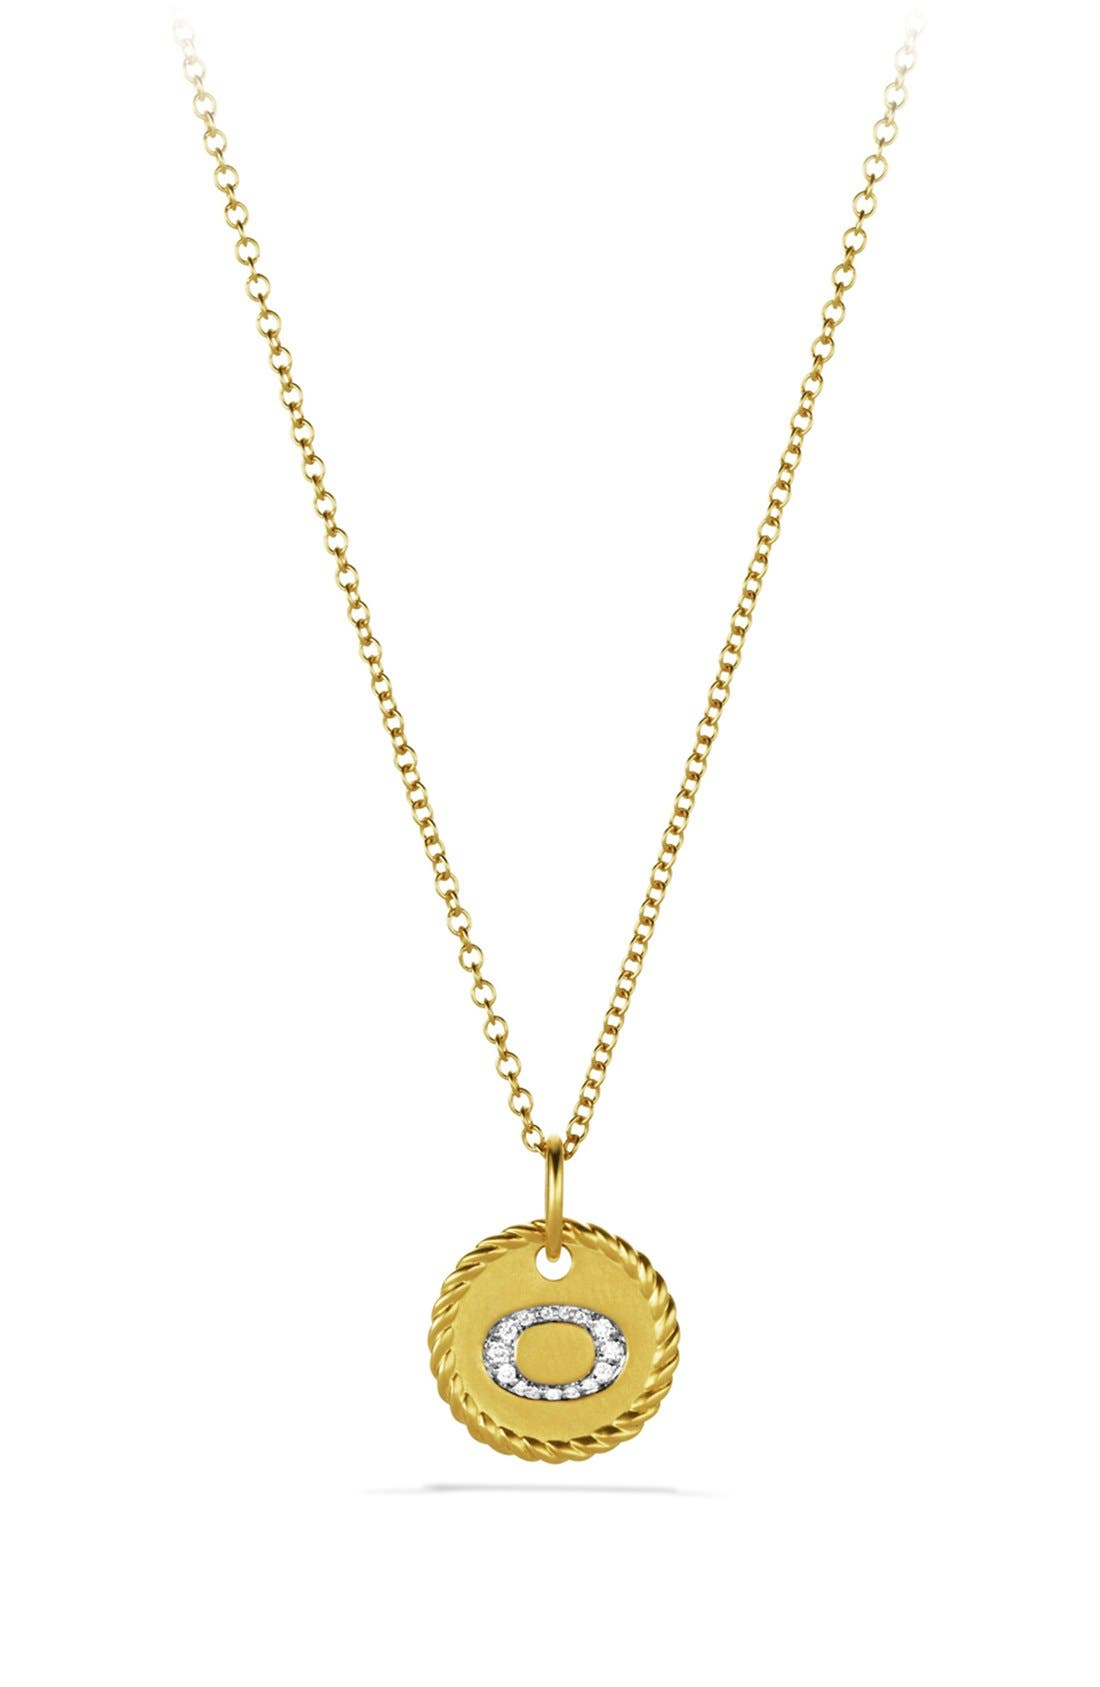 'Cable Collectibles' Initial Pendant with Diamonds in Gold on Chain,                         Main,                         color, B